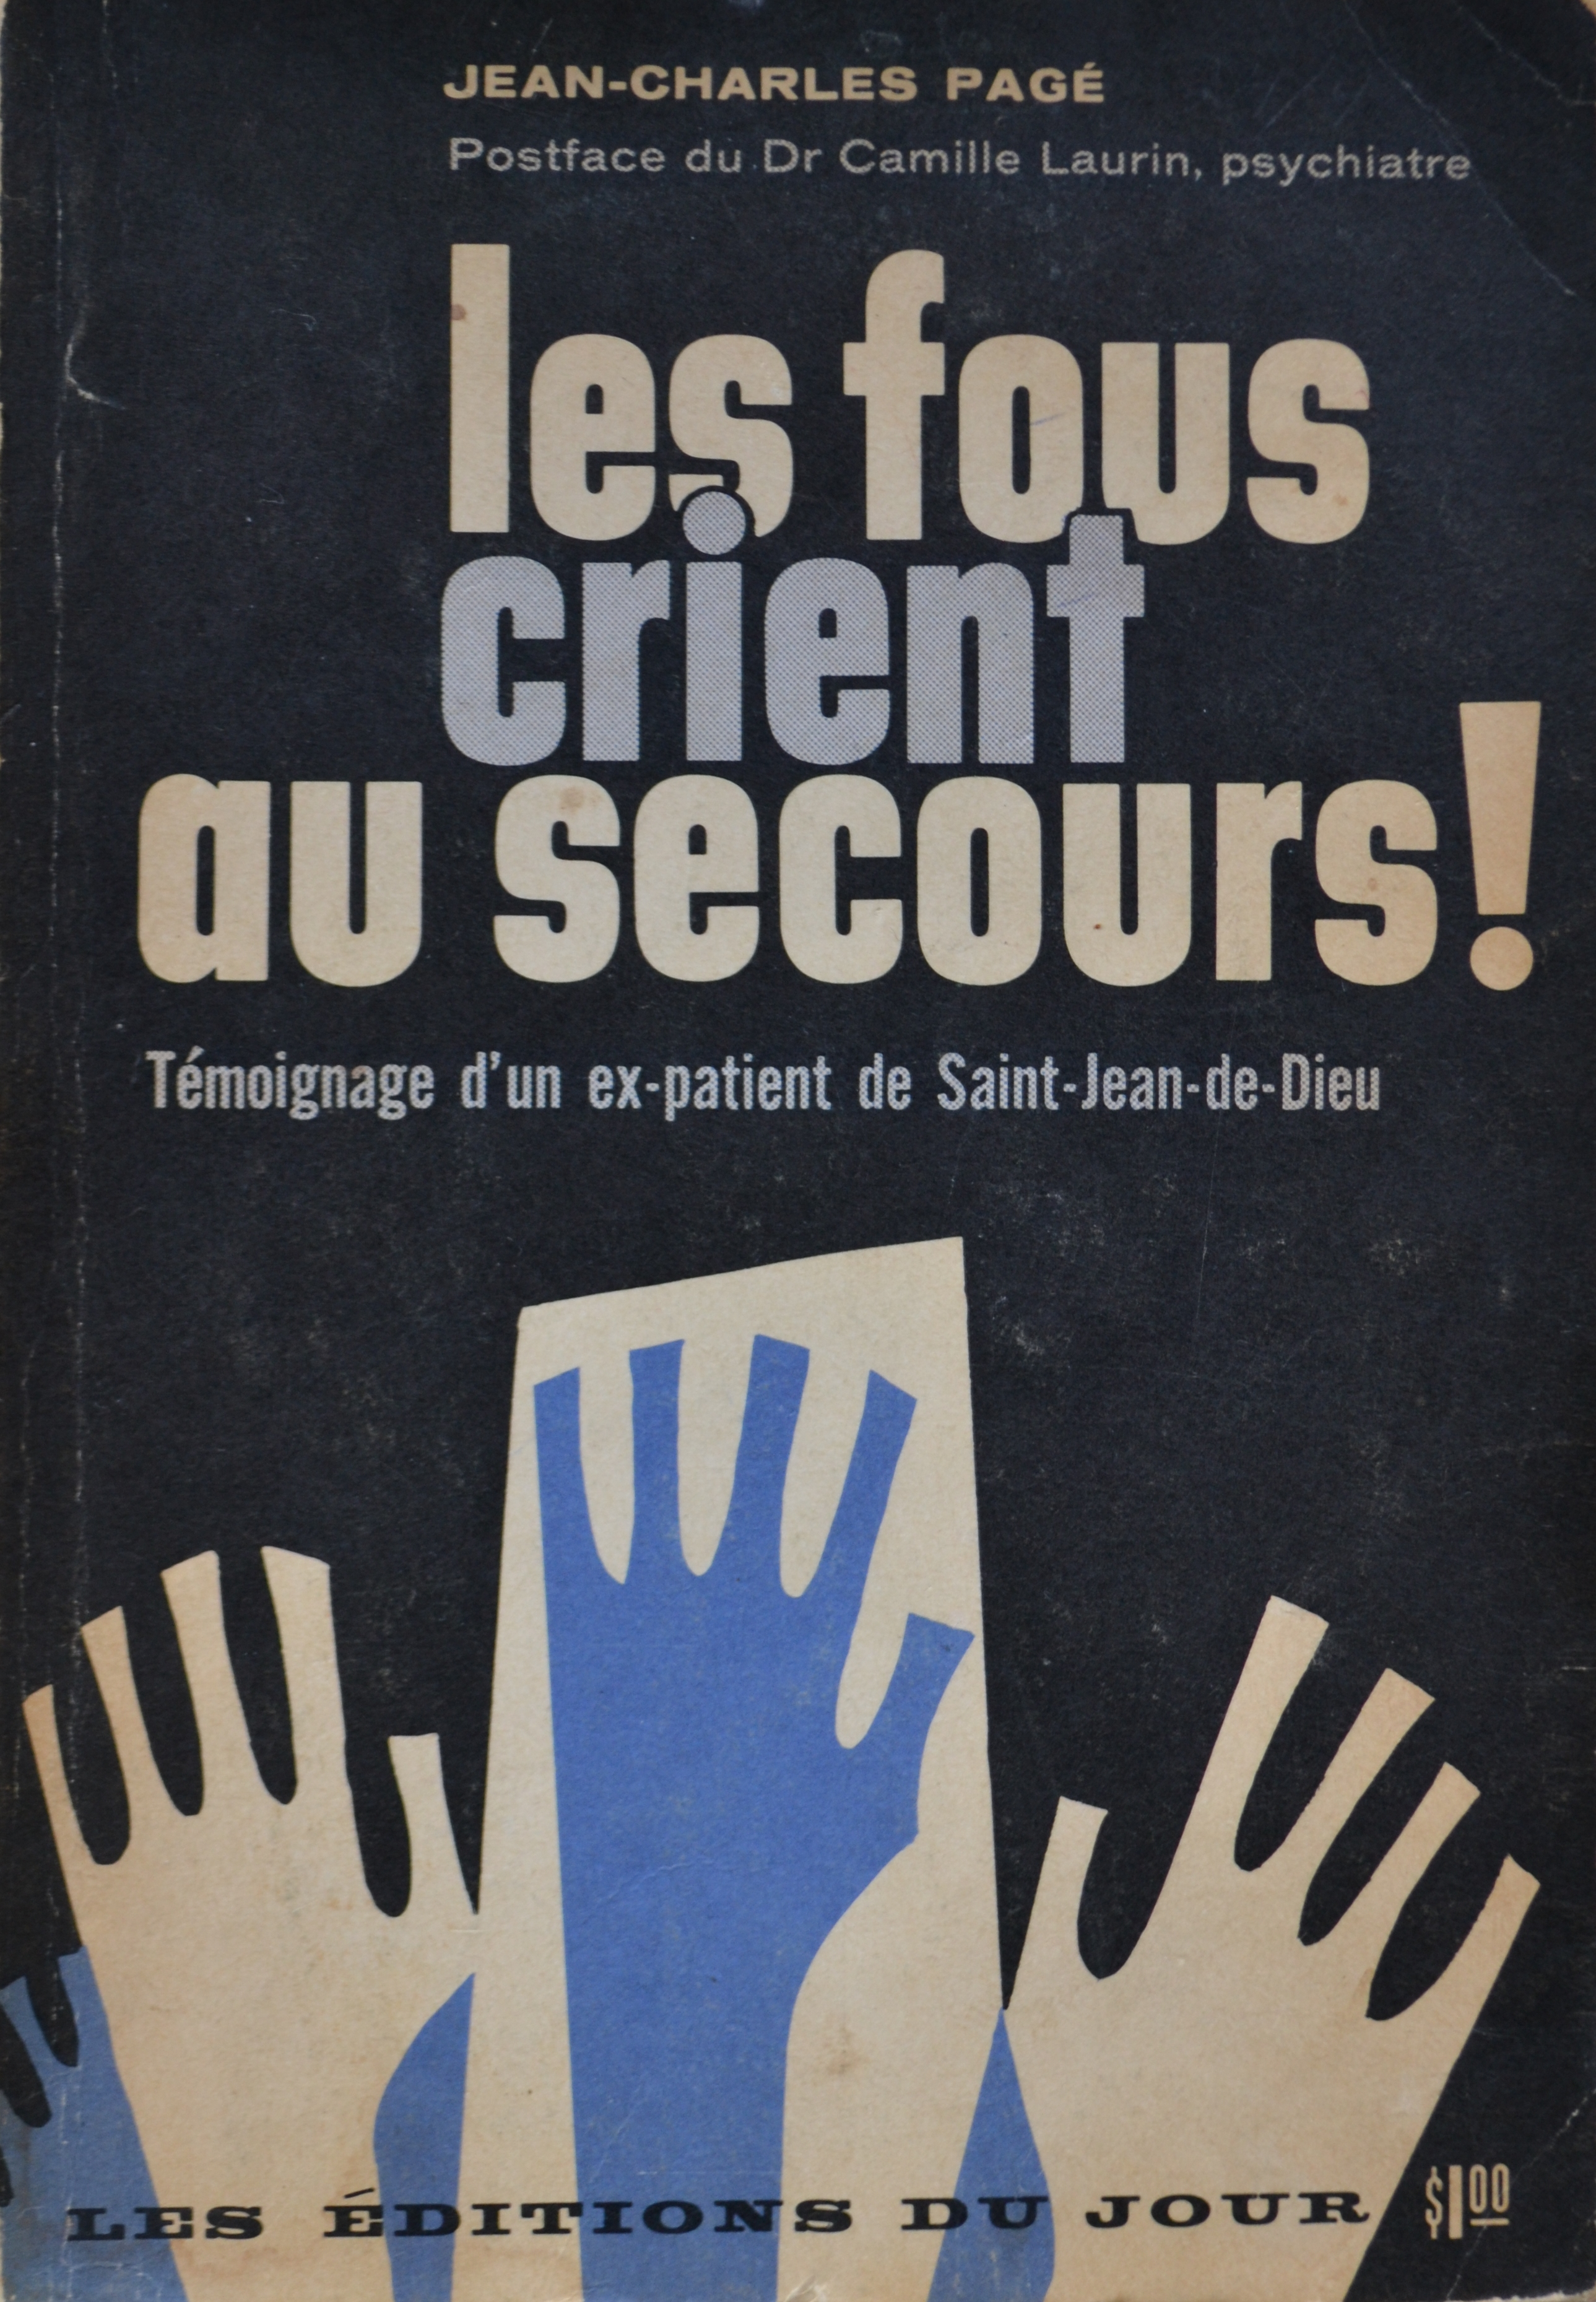 book cover with title Les Fous crient au secours and image of hands rising